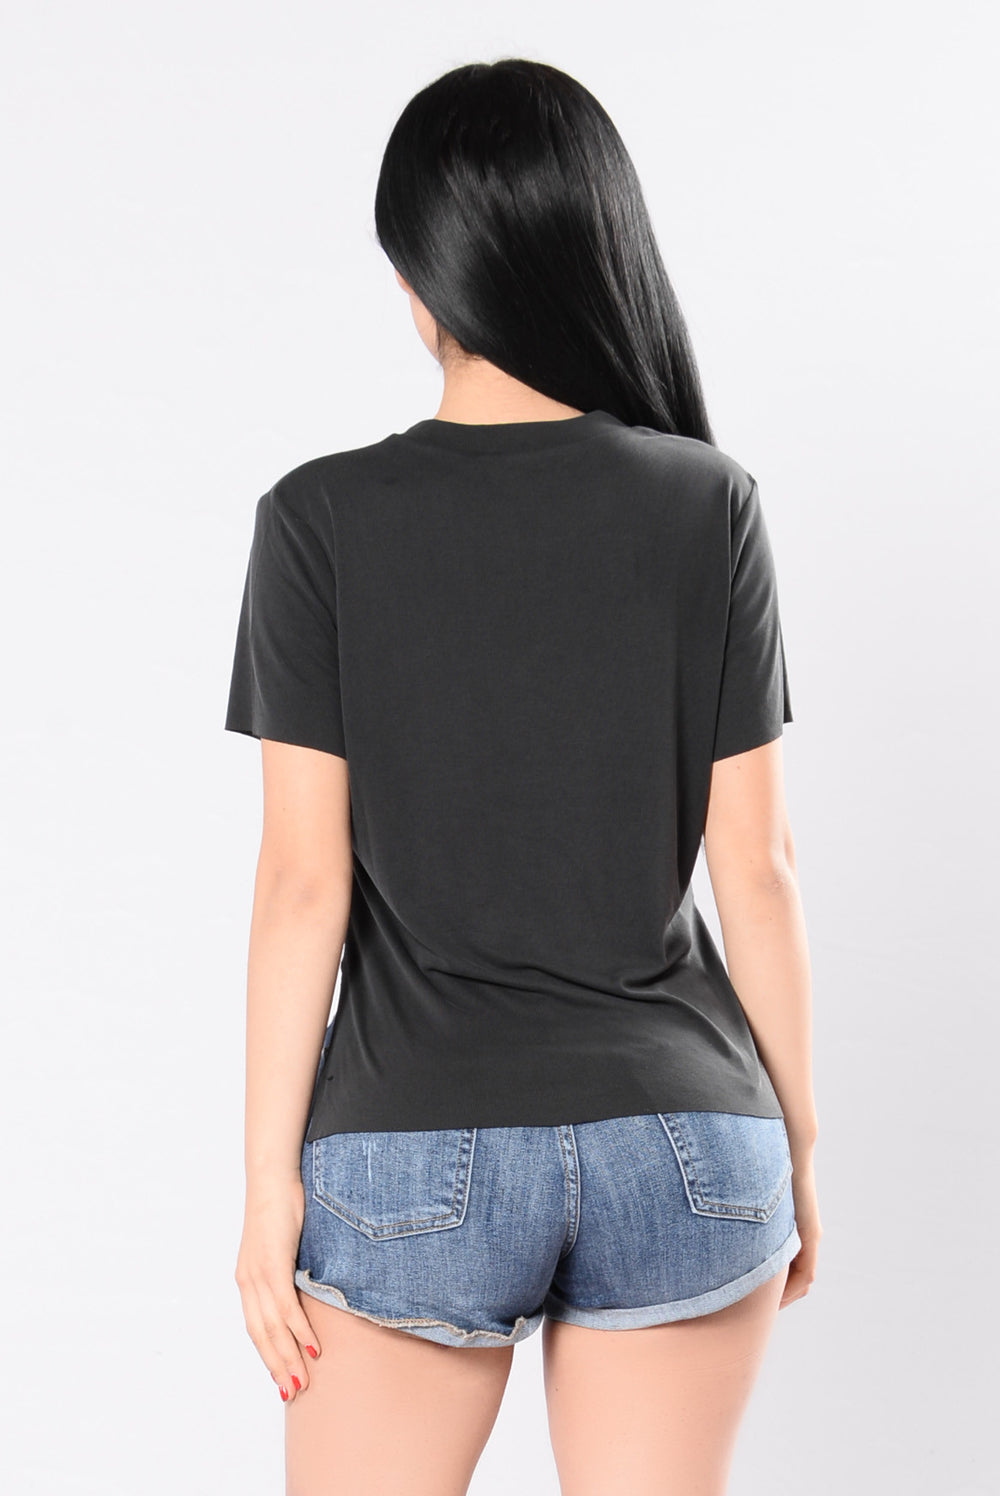 Simple As That Tee - Black